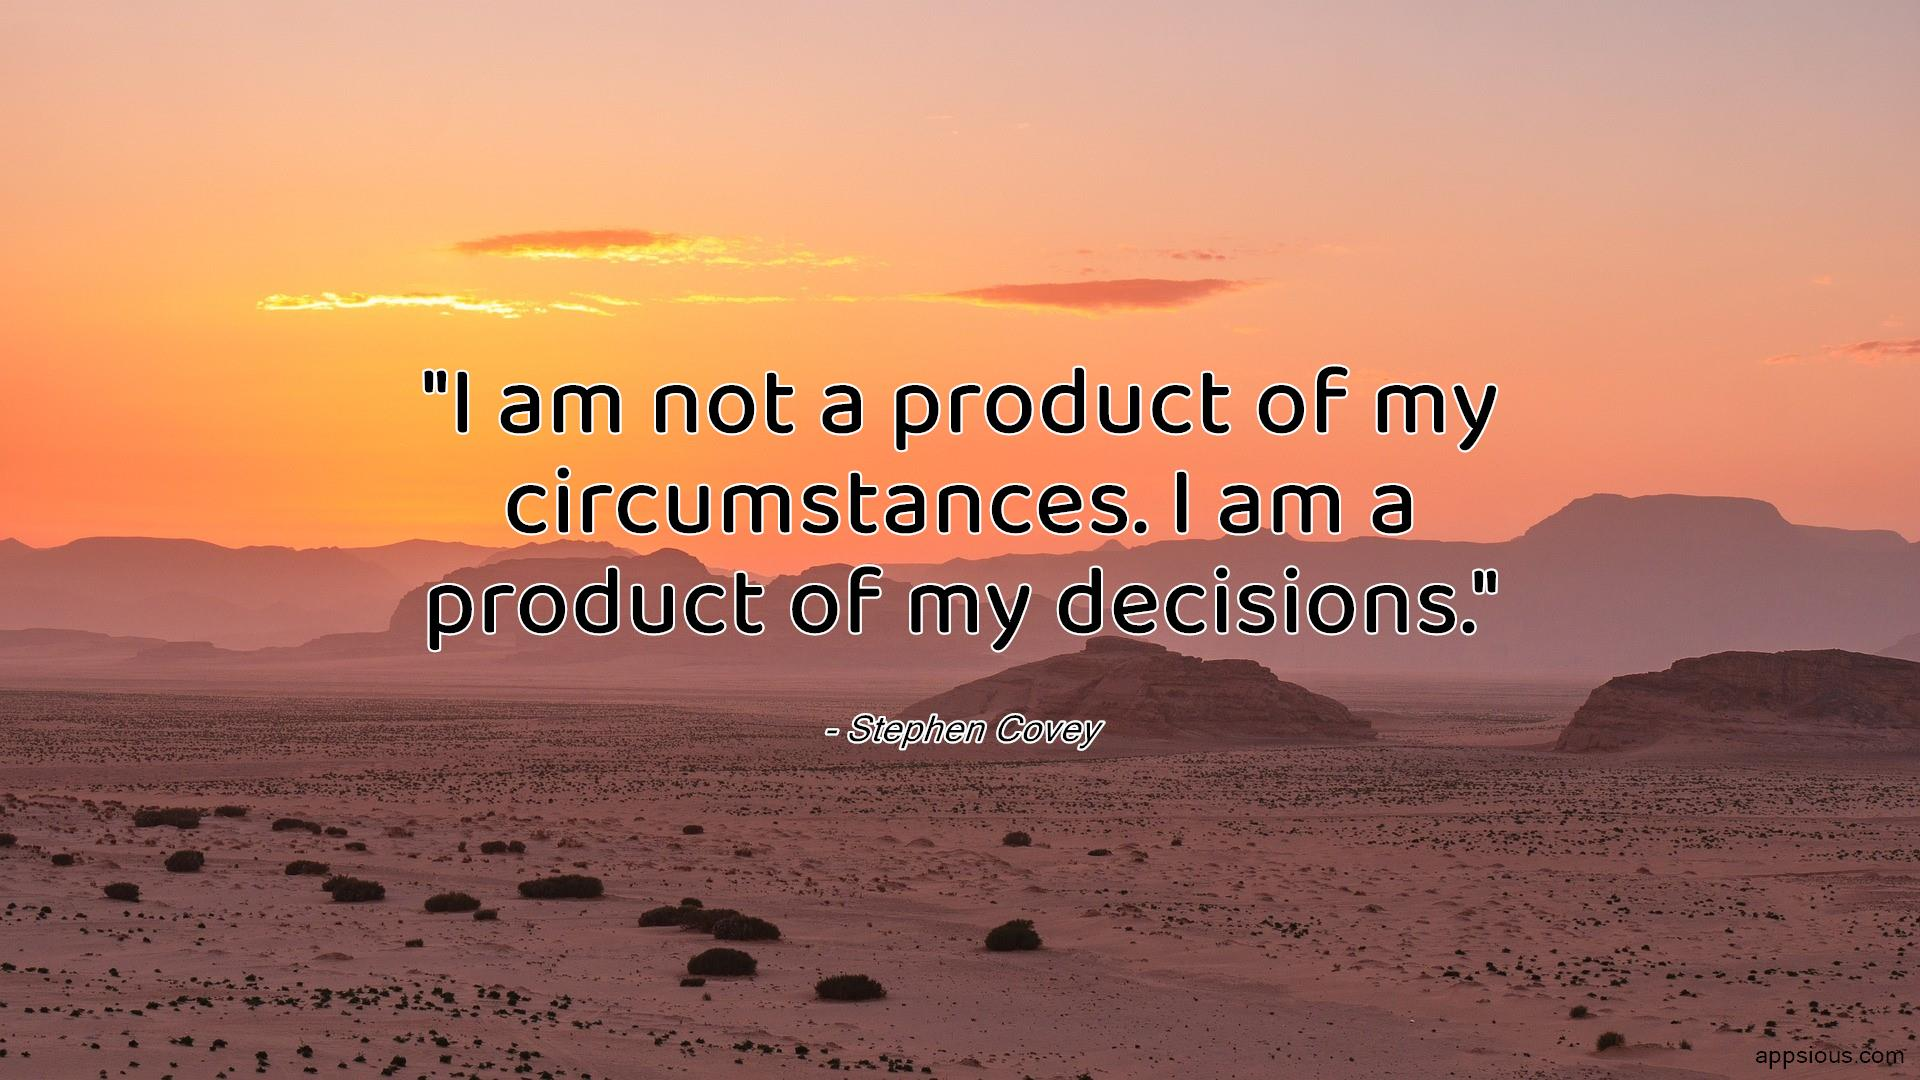 I am not a product of my circumstances. I am a product of my decisions.